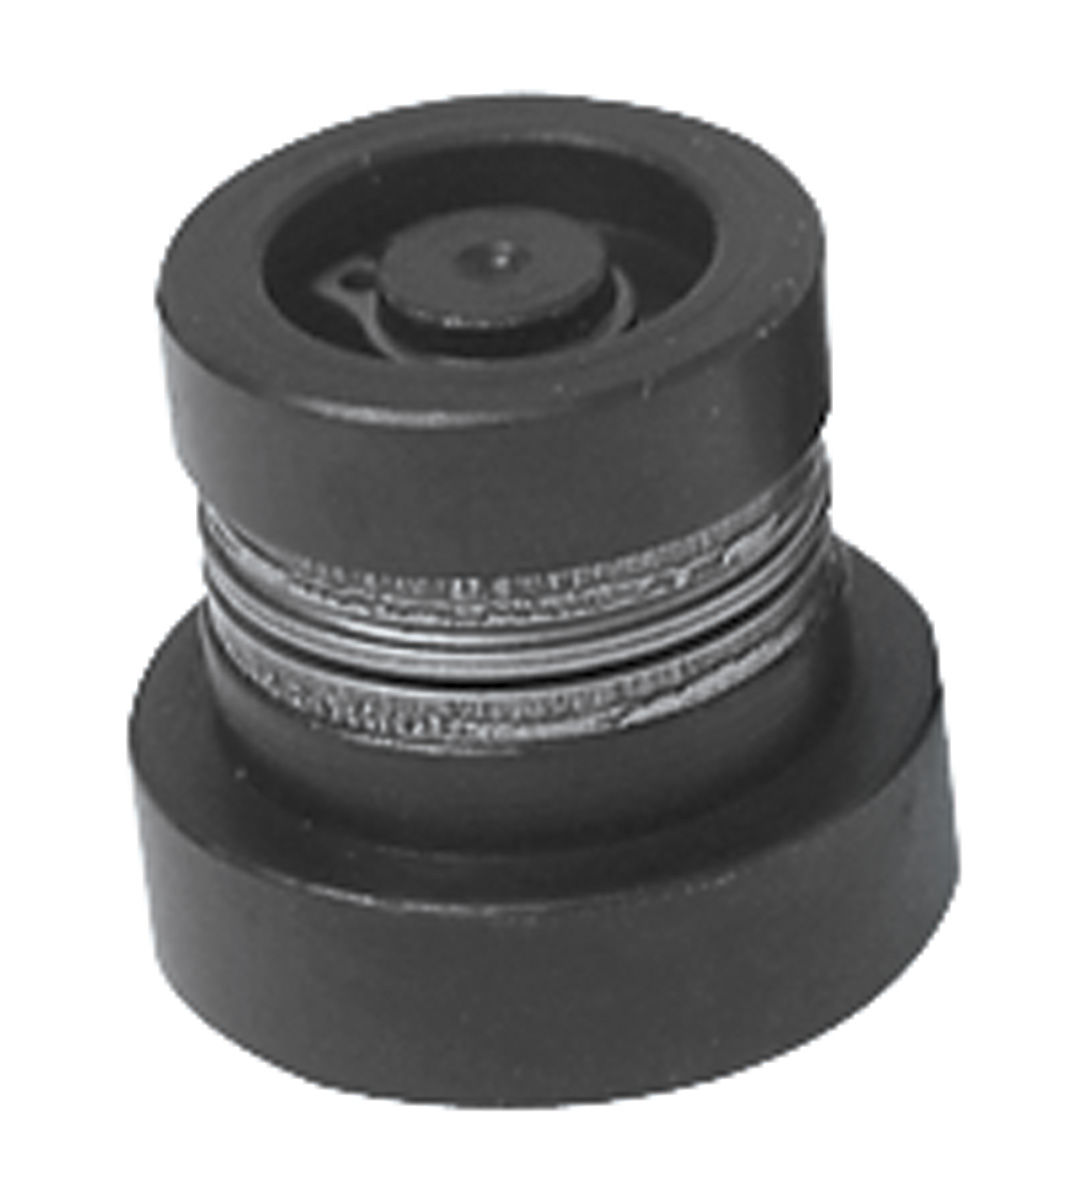 Photo of Camshaft Thrust Button roller - small-block